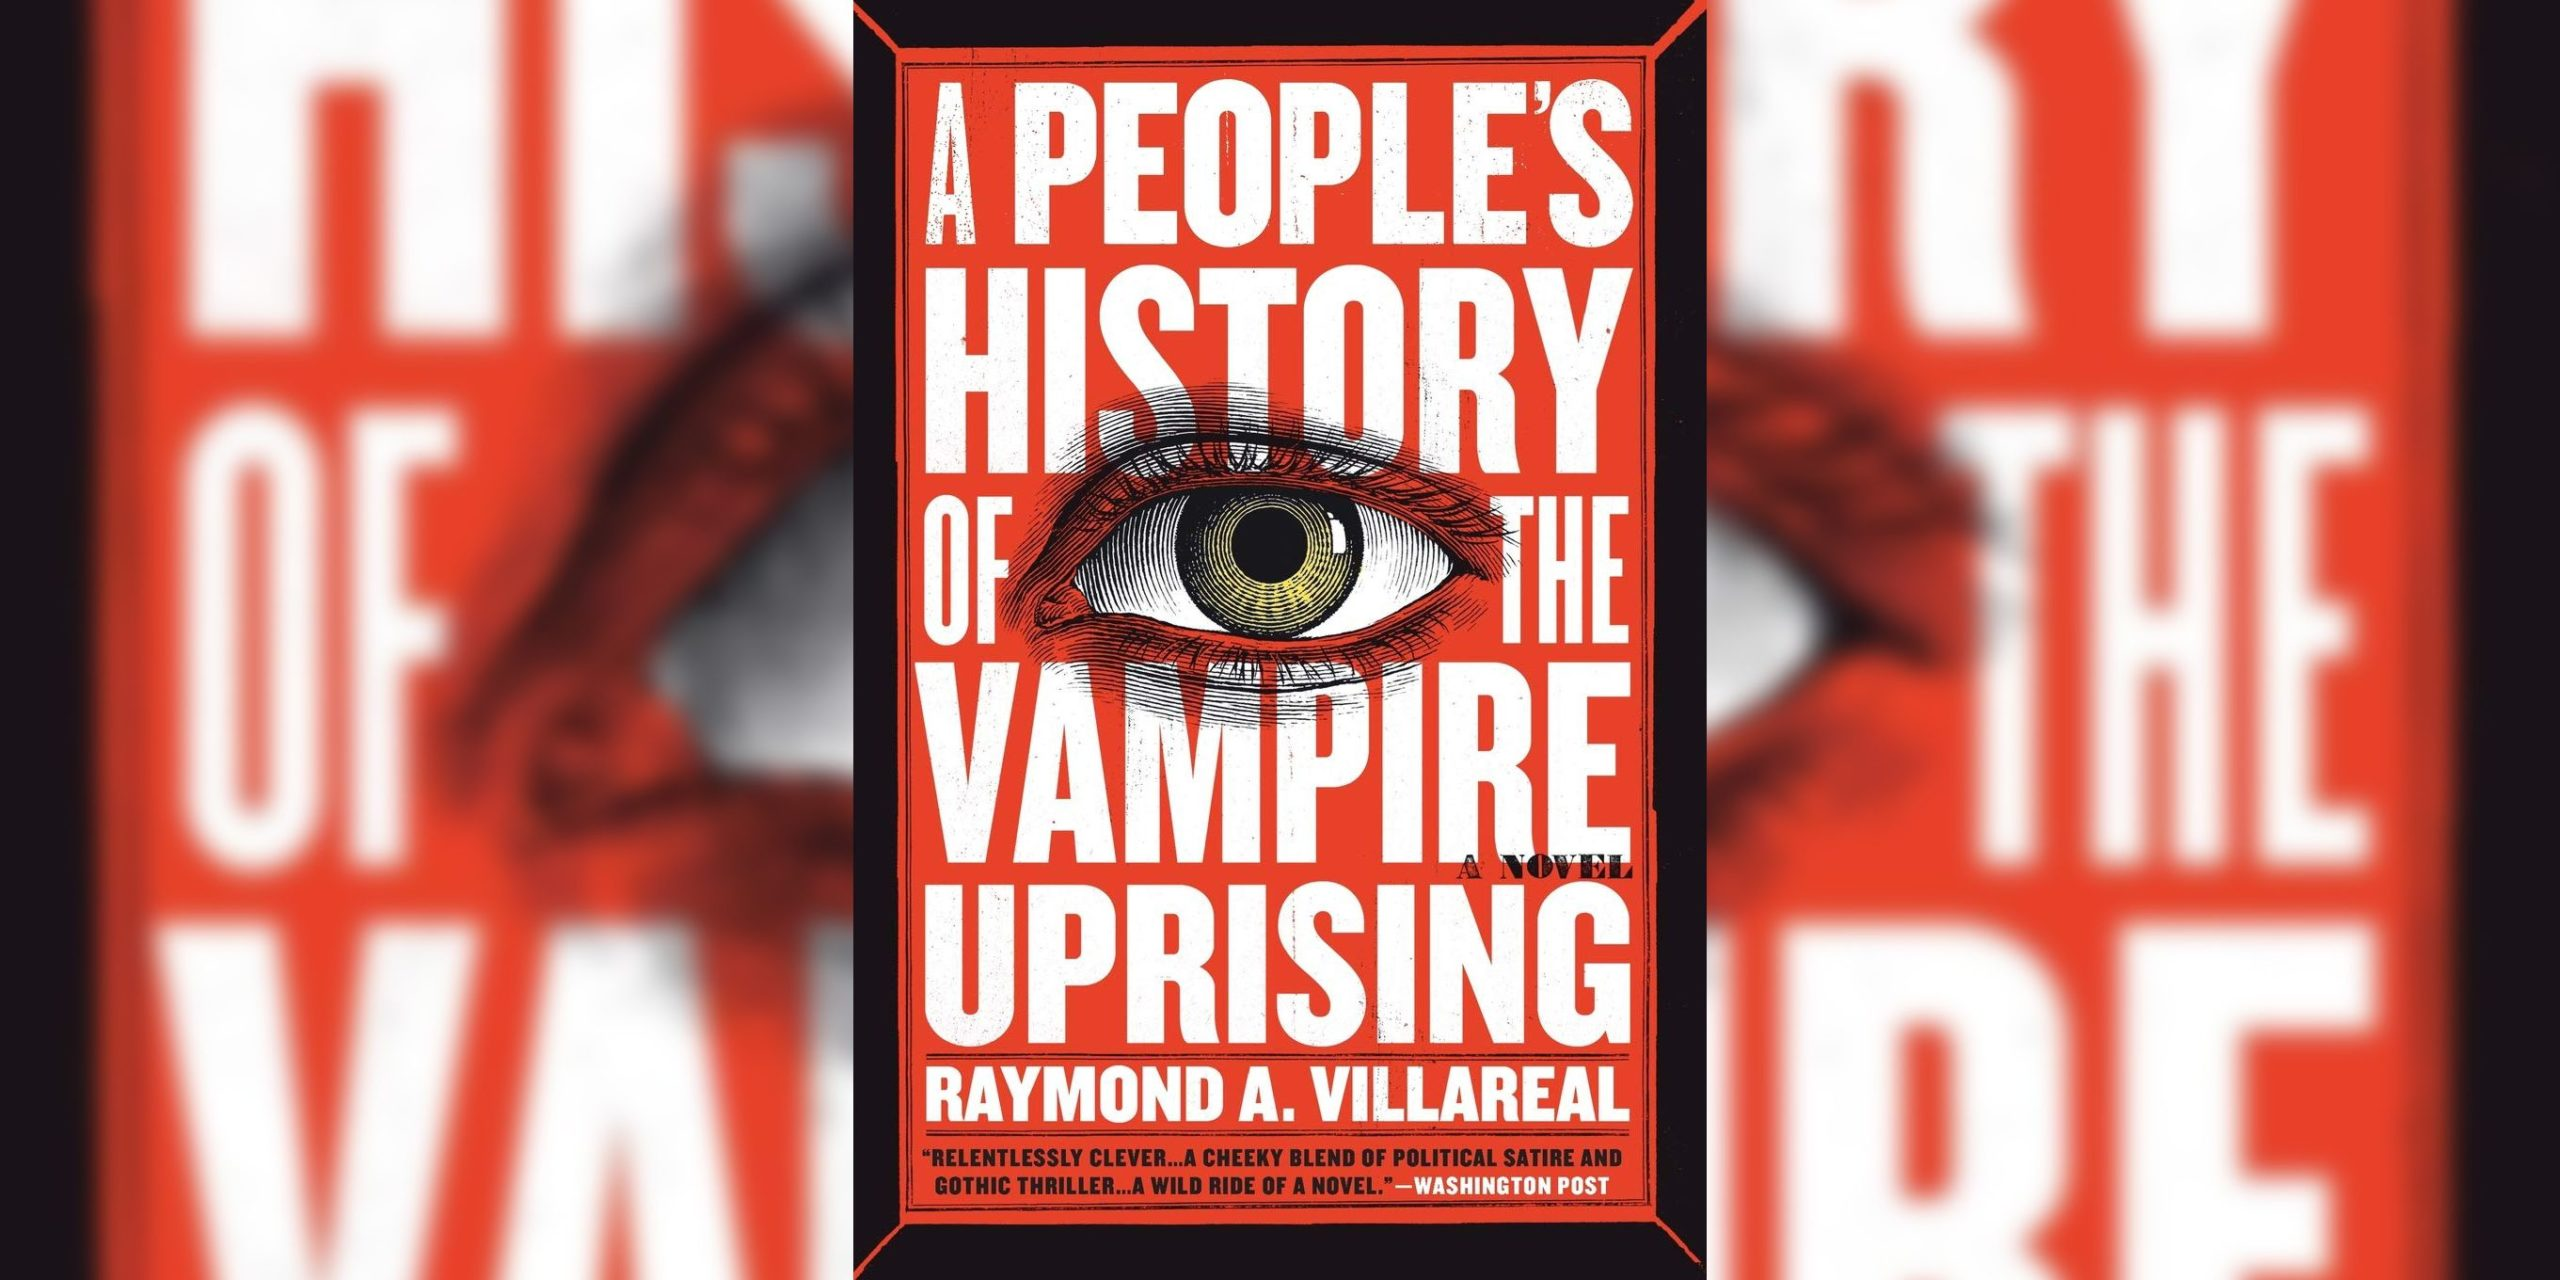 Netflix's Vampire Thriller 'Uprising': Everything You Want To Know!!